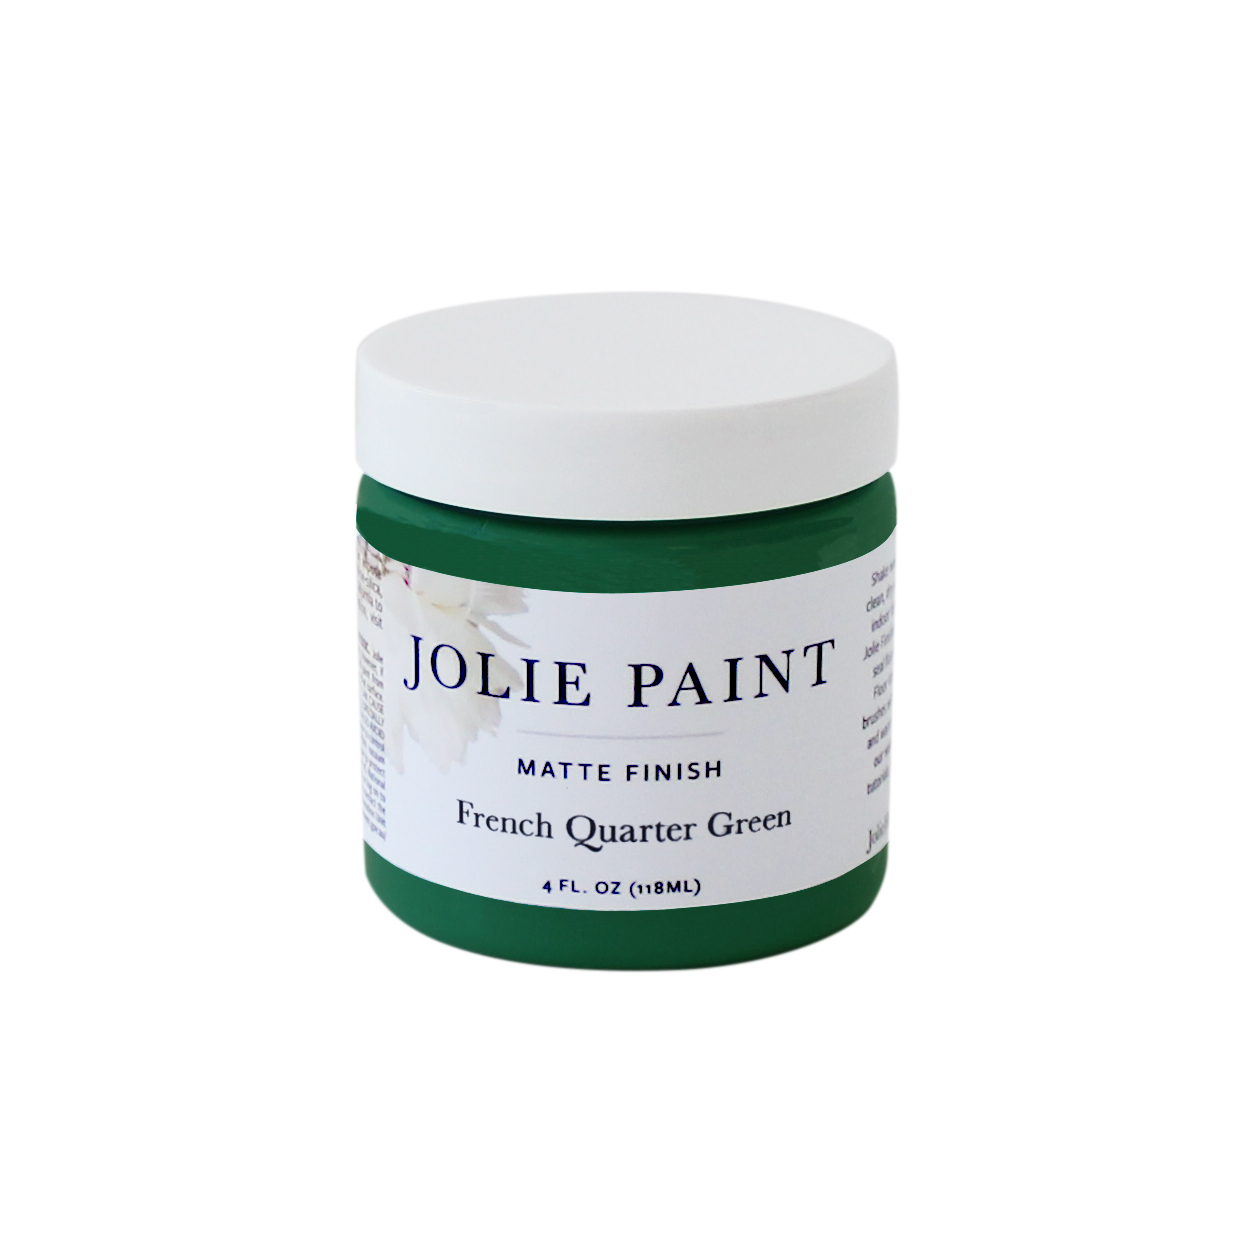 French Quarter Green - Jolie Paint (s)